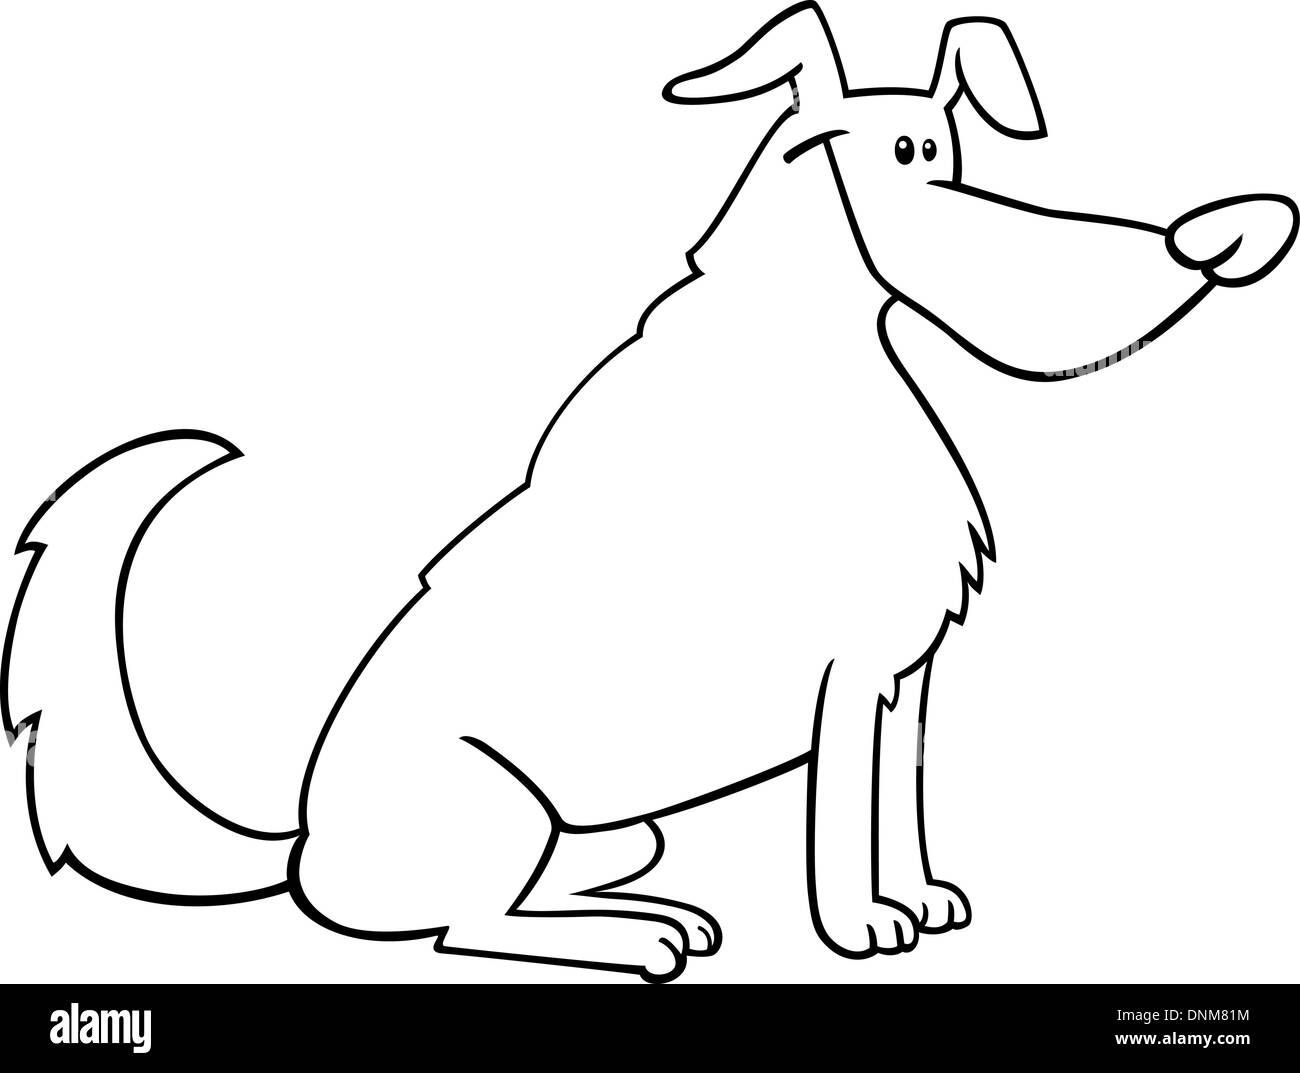 25+ Sit Cartoon Images Black And White PNG